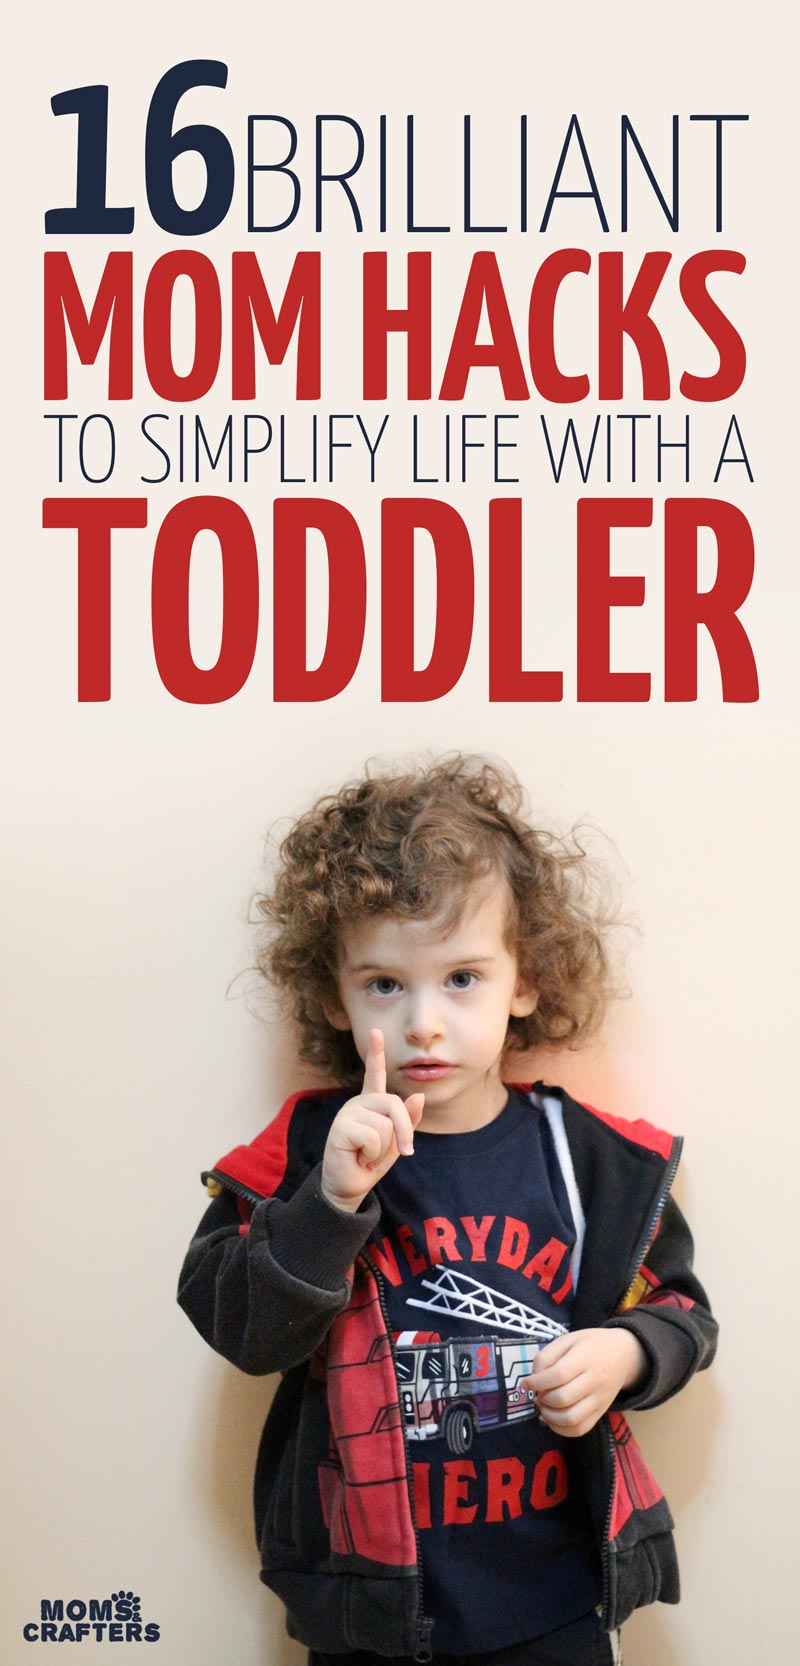 16 genius mom hacks to simplify life with a toddler -these brilliant parenting hacks are perfect for parenting toddlers and preschoolers, with some parenting tips for babies too!